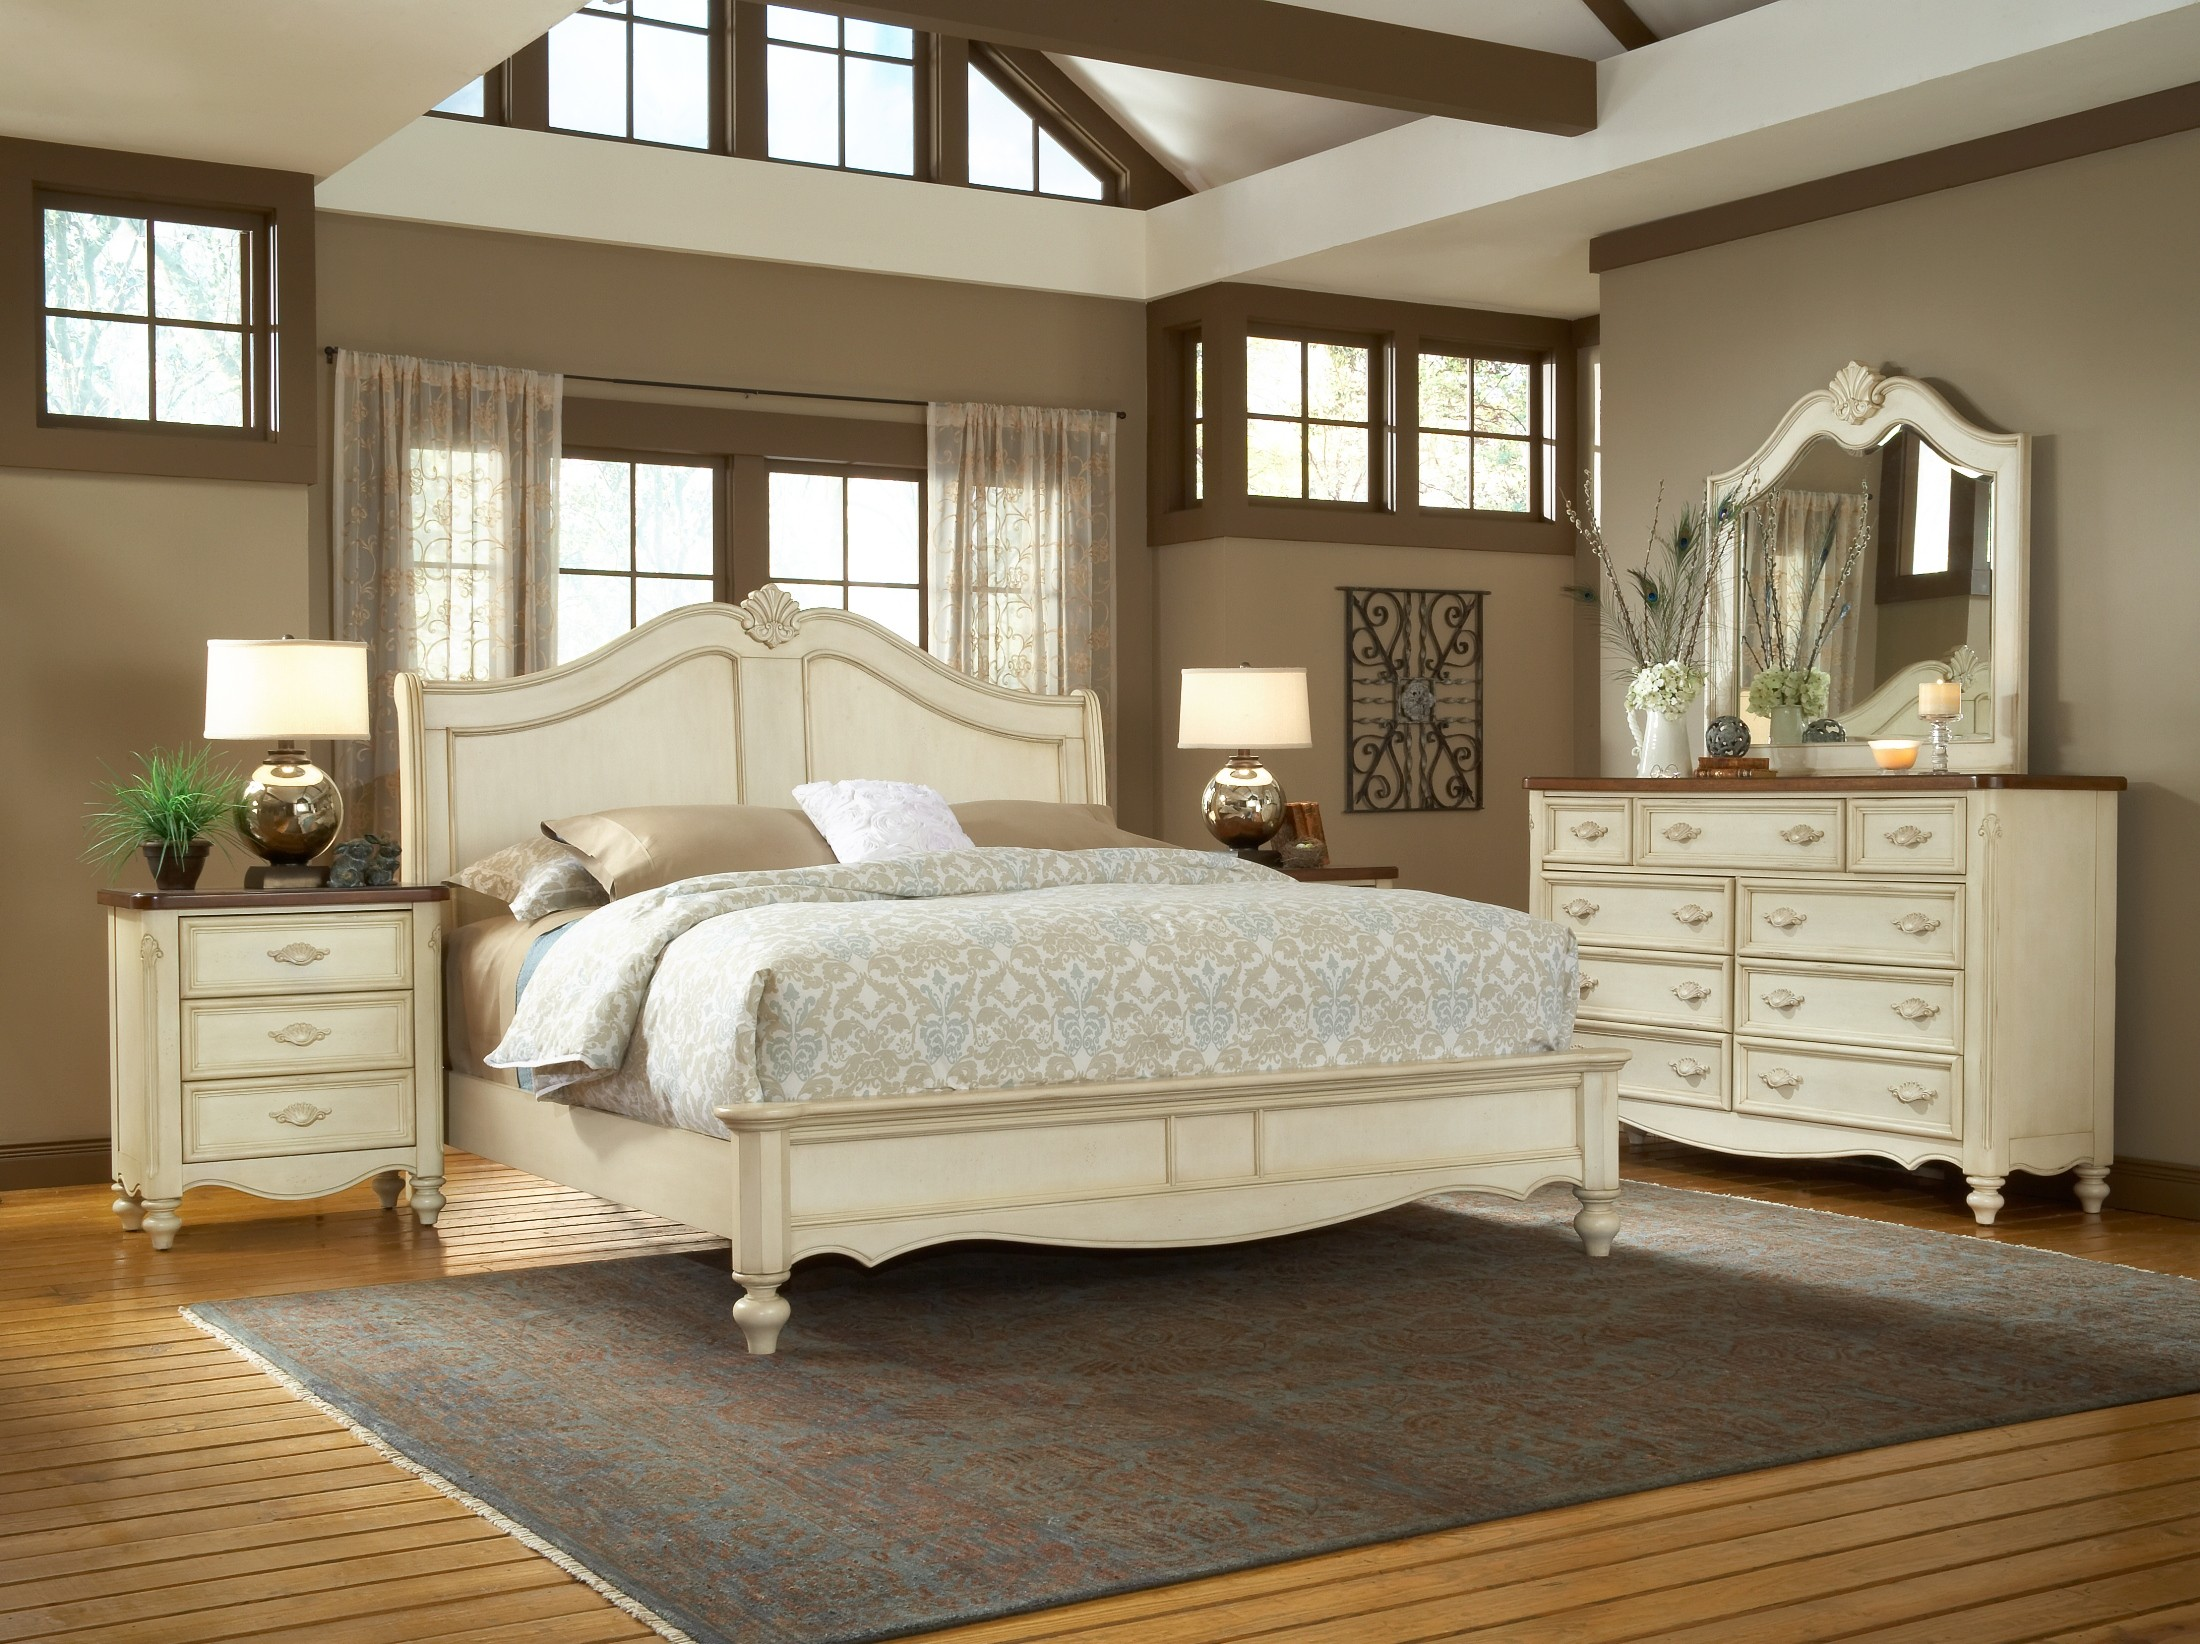 chateau sleigh bedroom set from american woodcrafters (3501-50sle